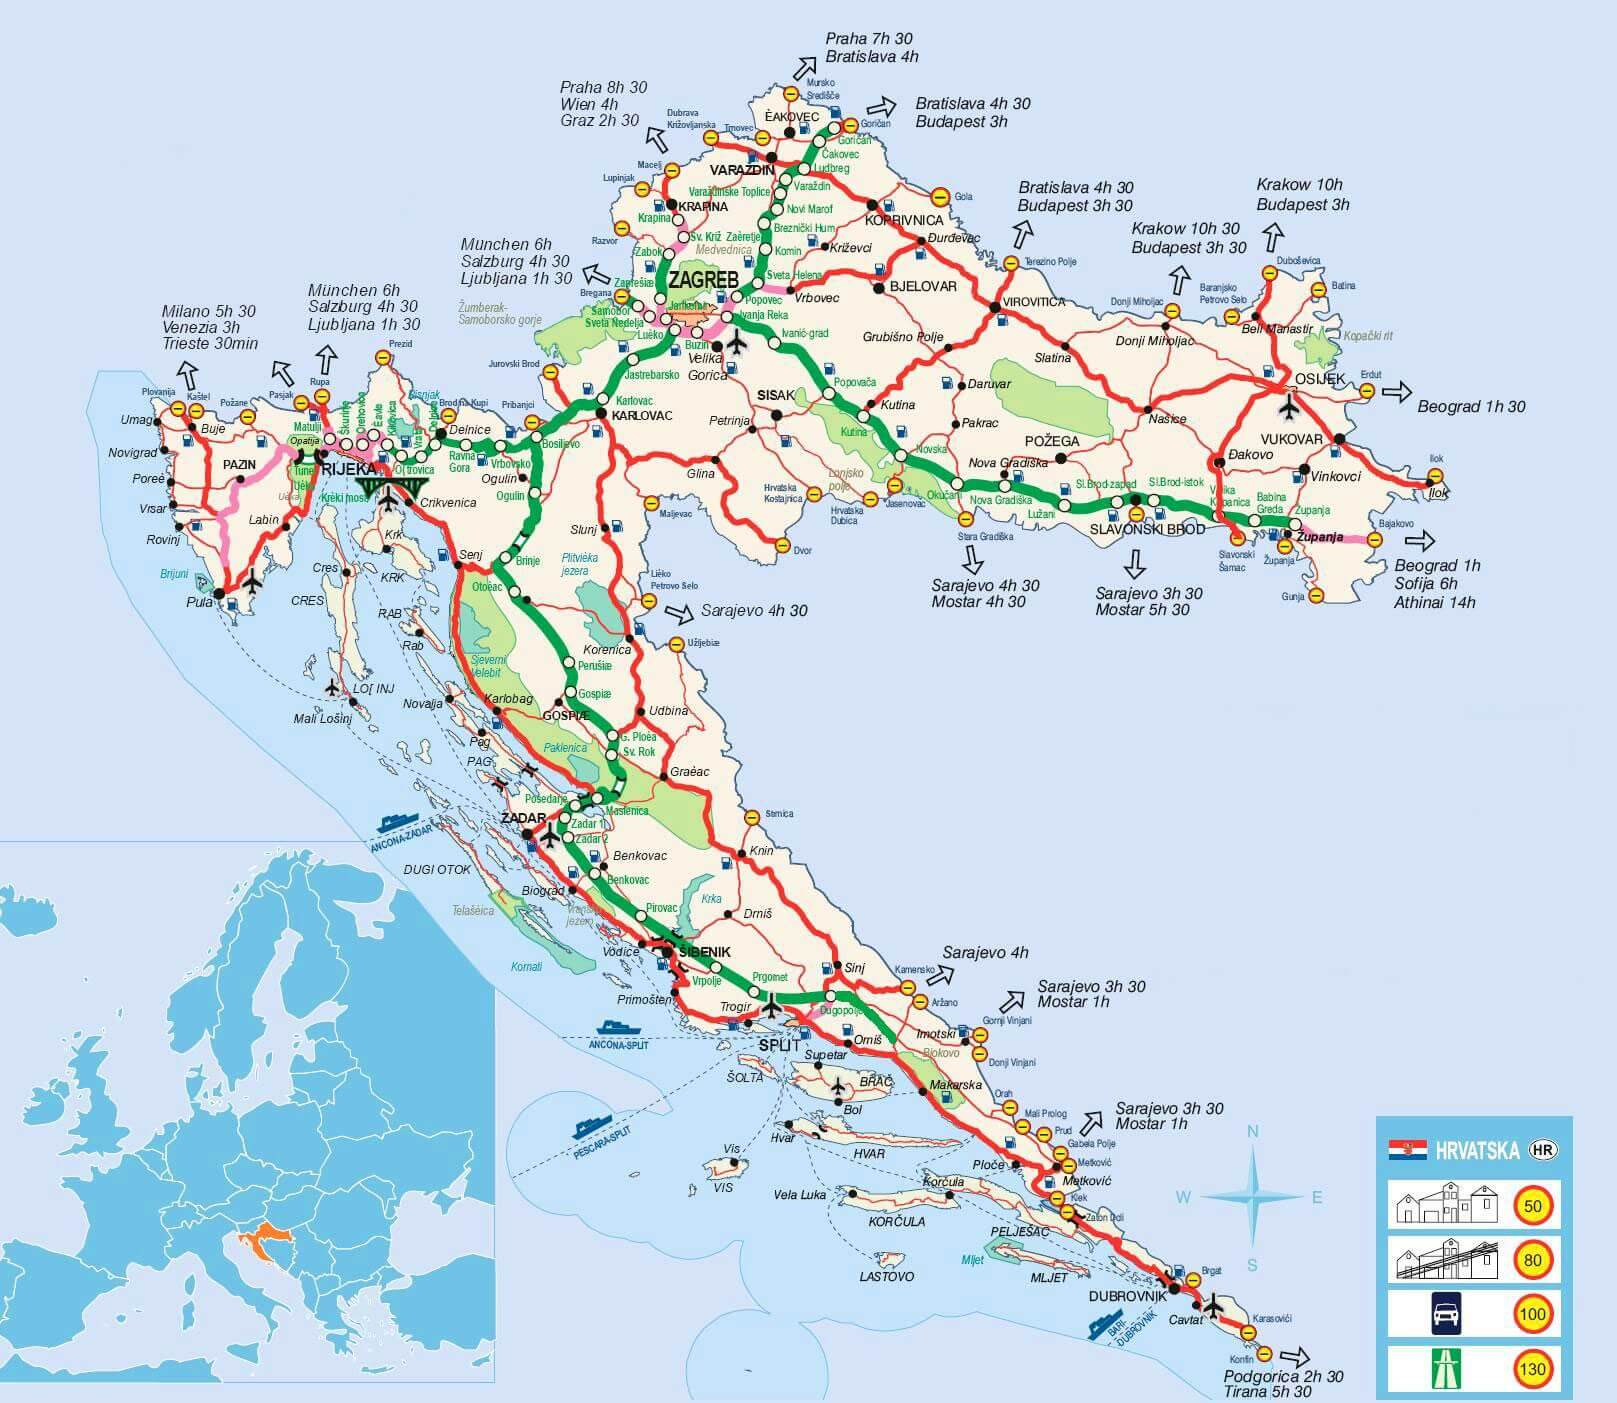 Carte des infrastructures de transport en Croatie